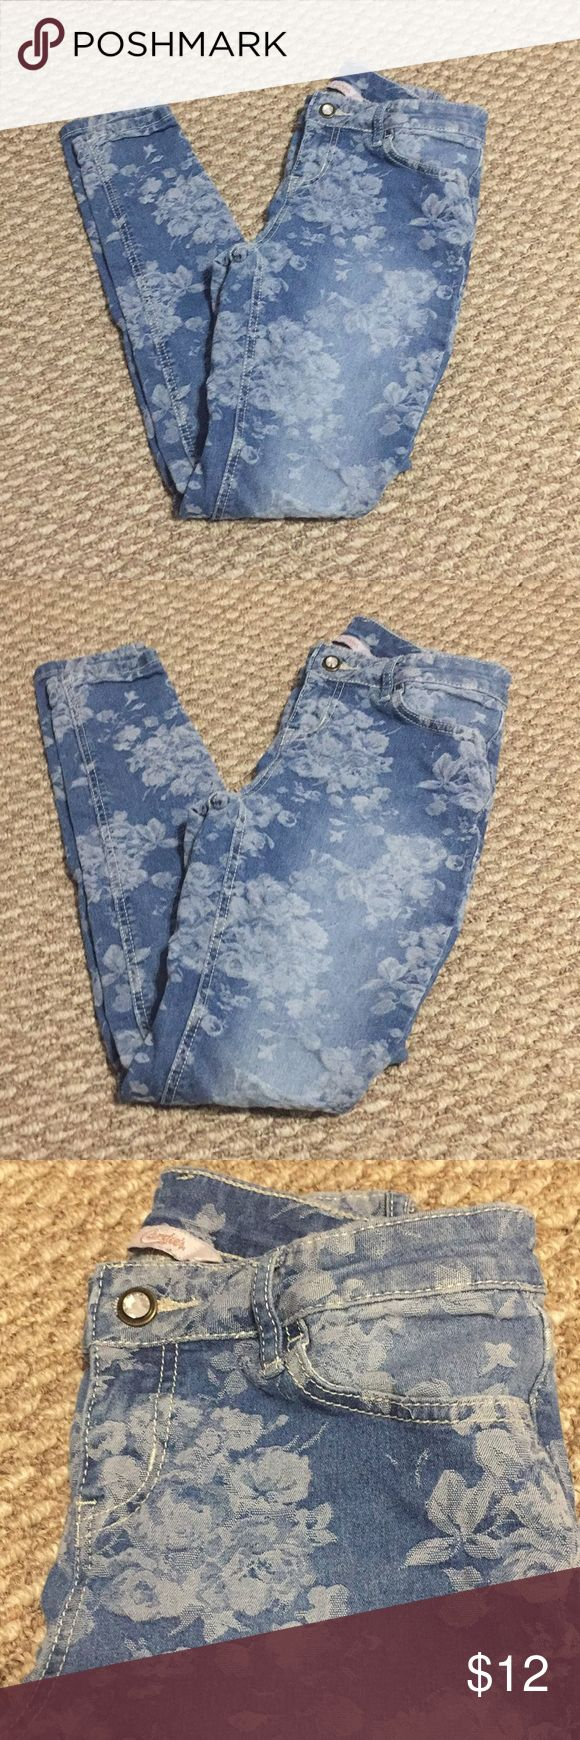 Floral print skinny jeans Candies floral print skinny jeans in a size 3 in juniors. Have been worn once ! Candie's Jeans Skinny